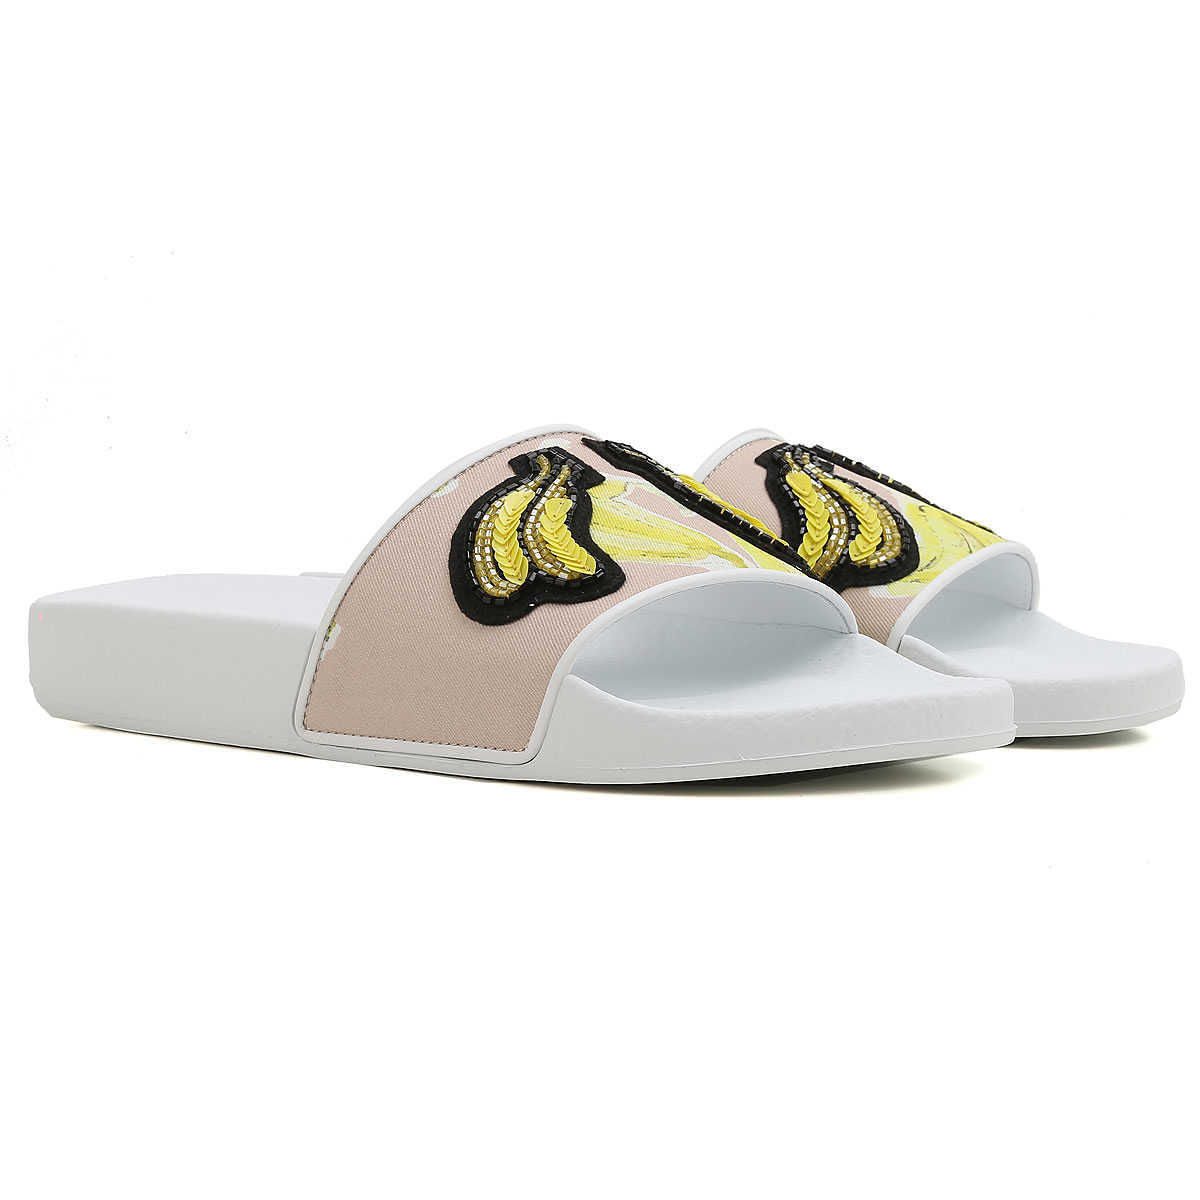 MSGM Sandals for Women On Sale in Outlet White DK - GOOFASH - Womens SANDALS